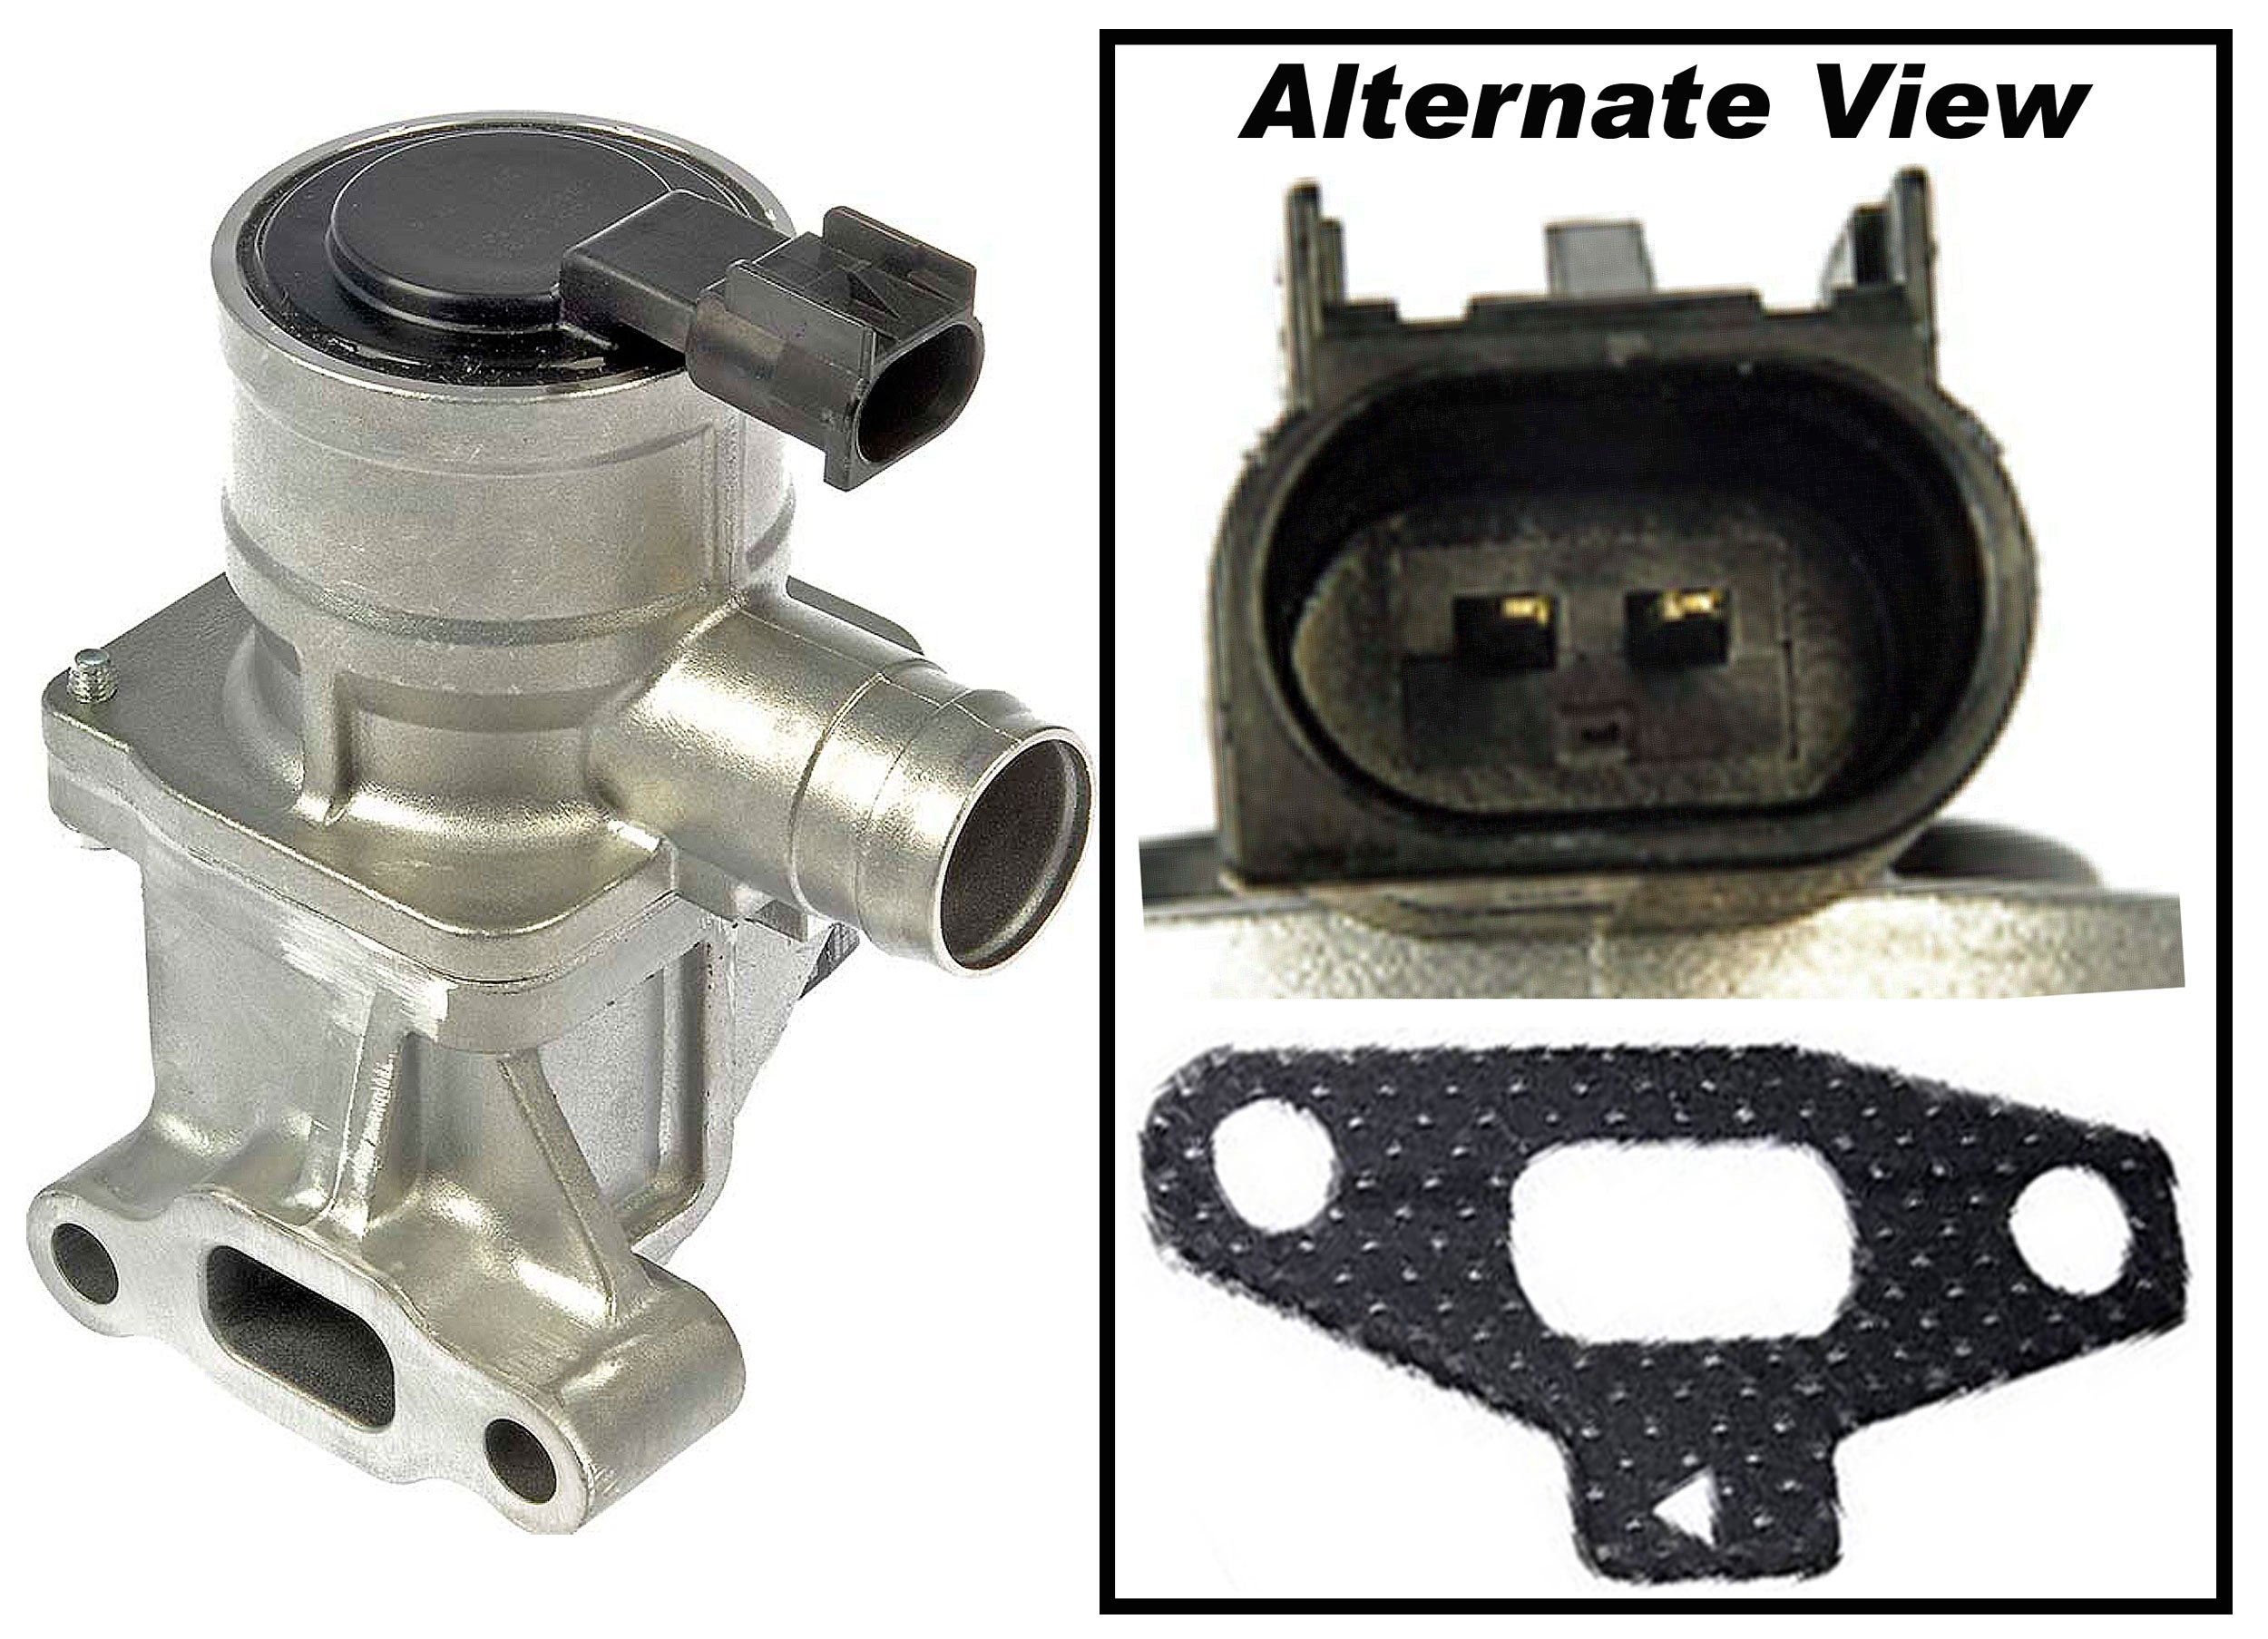 APDTY 022114 Secondary Air Injection Emission Shutoff Check Valve w/ Gasket Fits 4.2L 2004-2005 Buick Rainier Chevrolet Trailblazer GMC Envoy Olds Bravada Saab 9-7X (Replaces 12619128, 12575655)